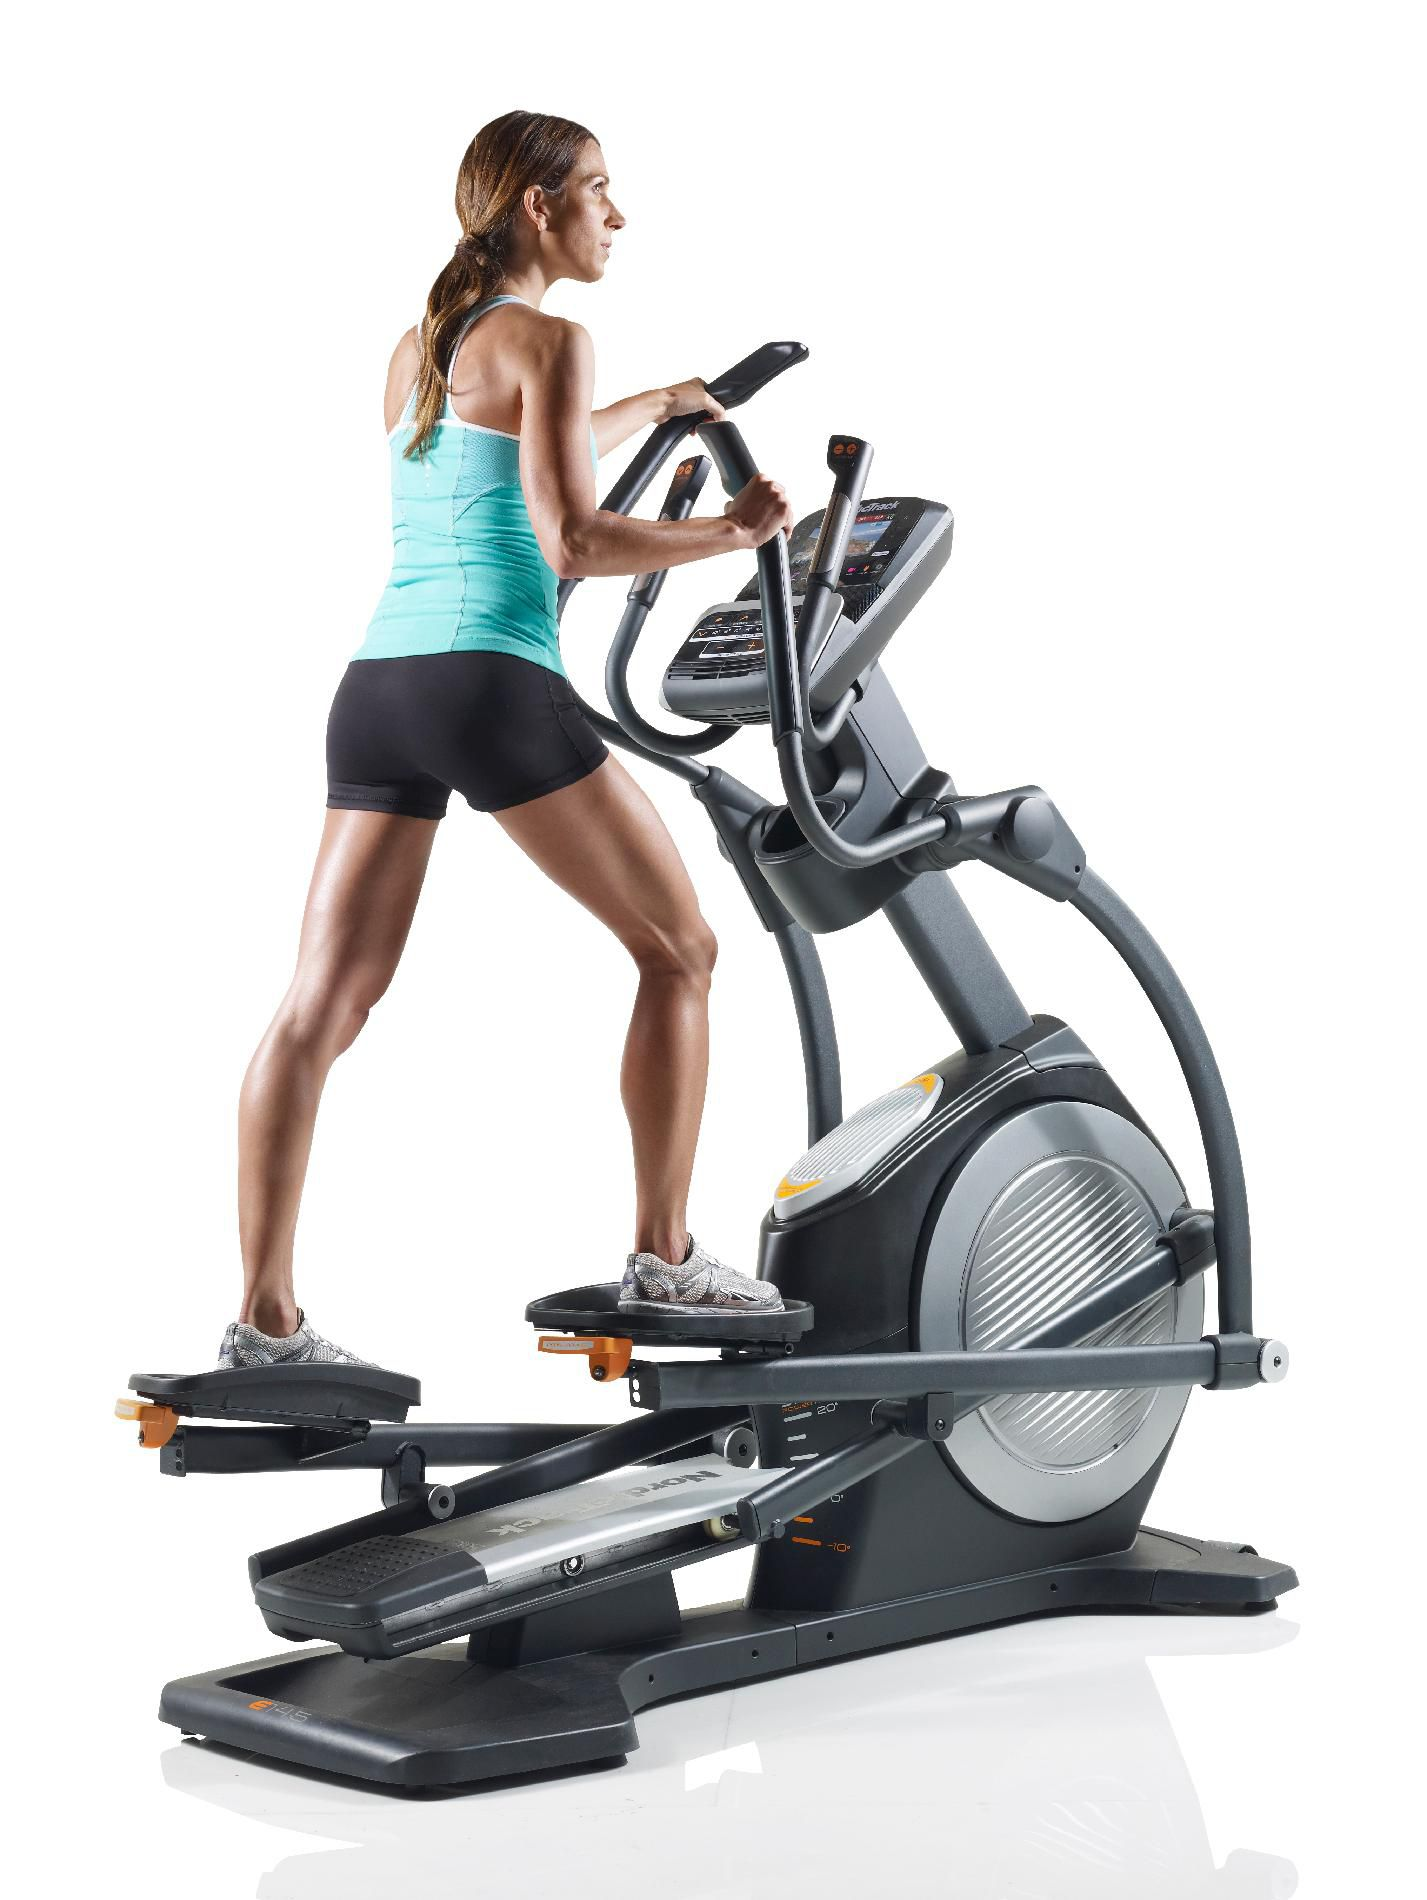 NordicTrack E 14.5 Elliptical